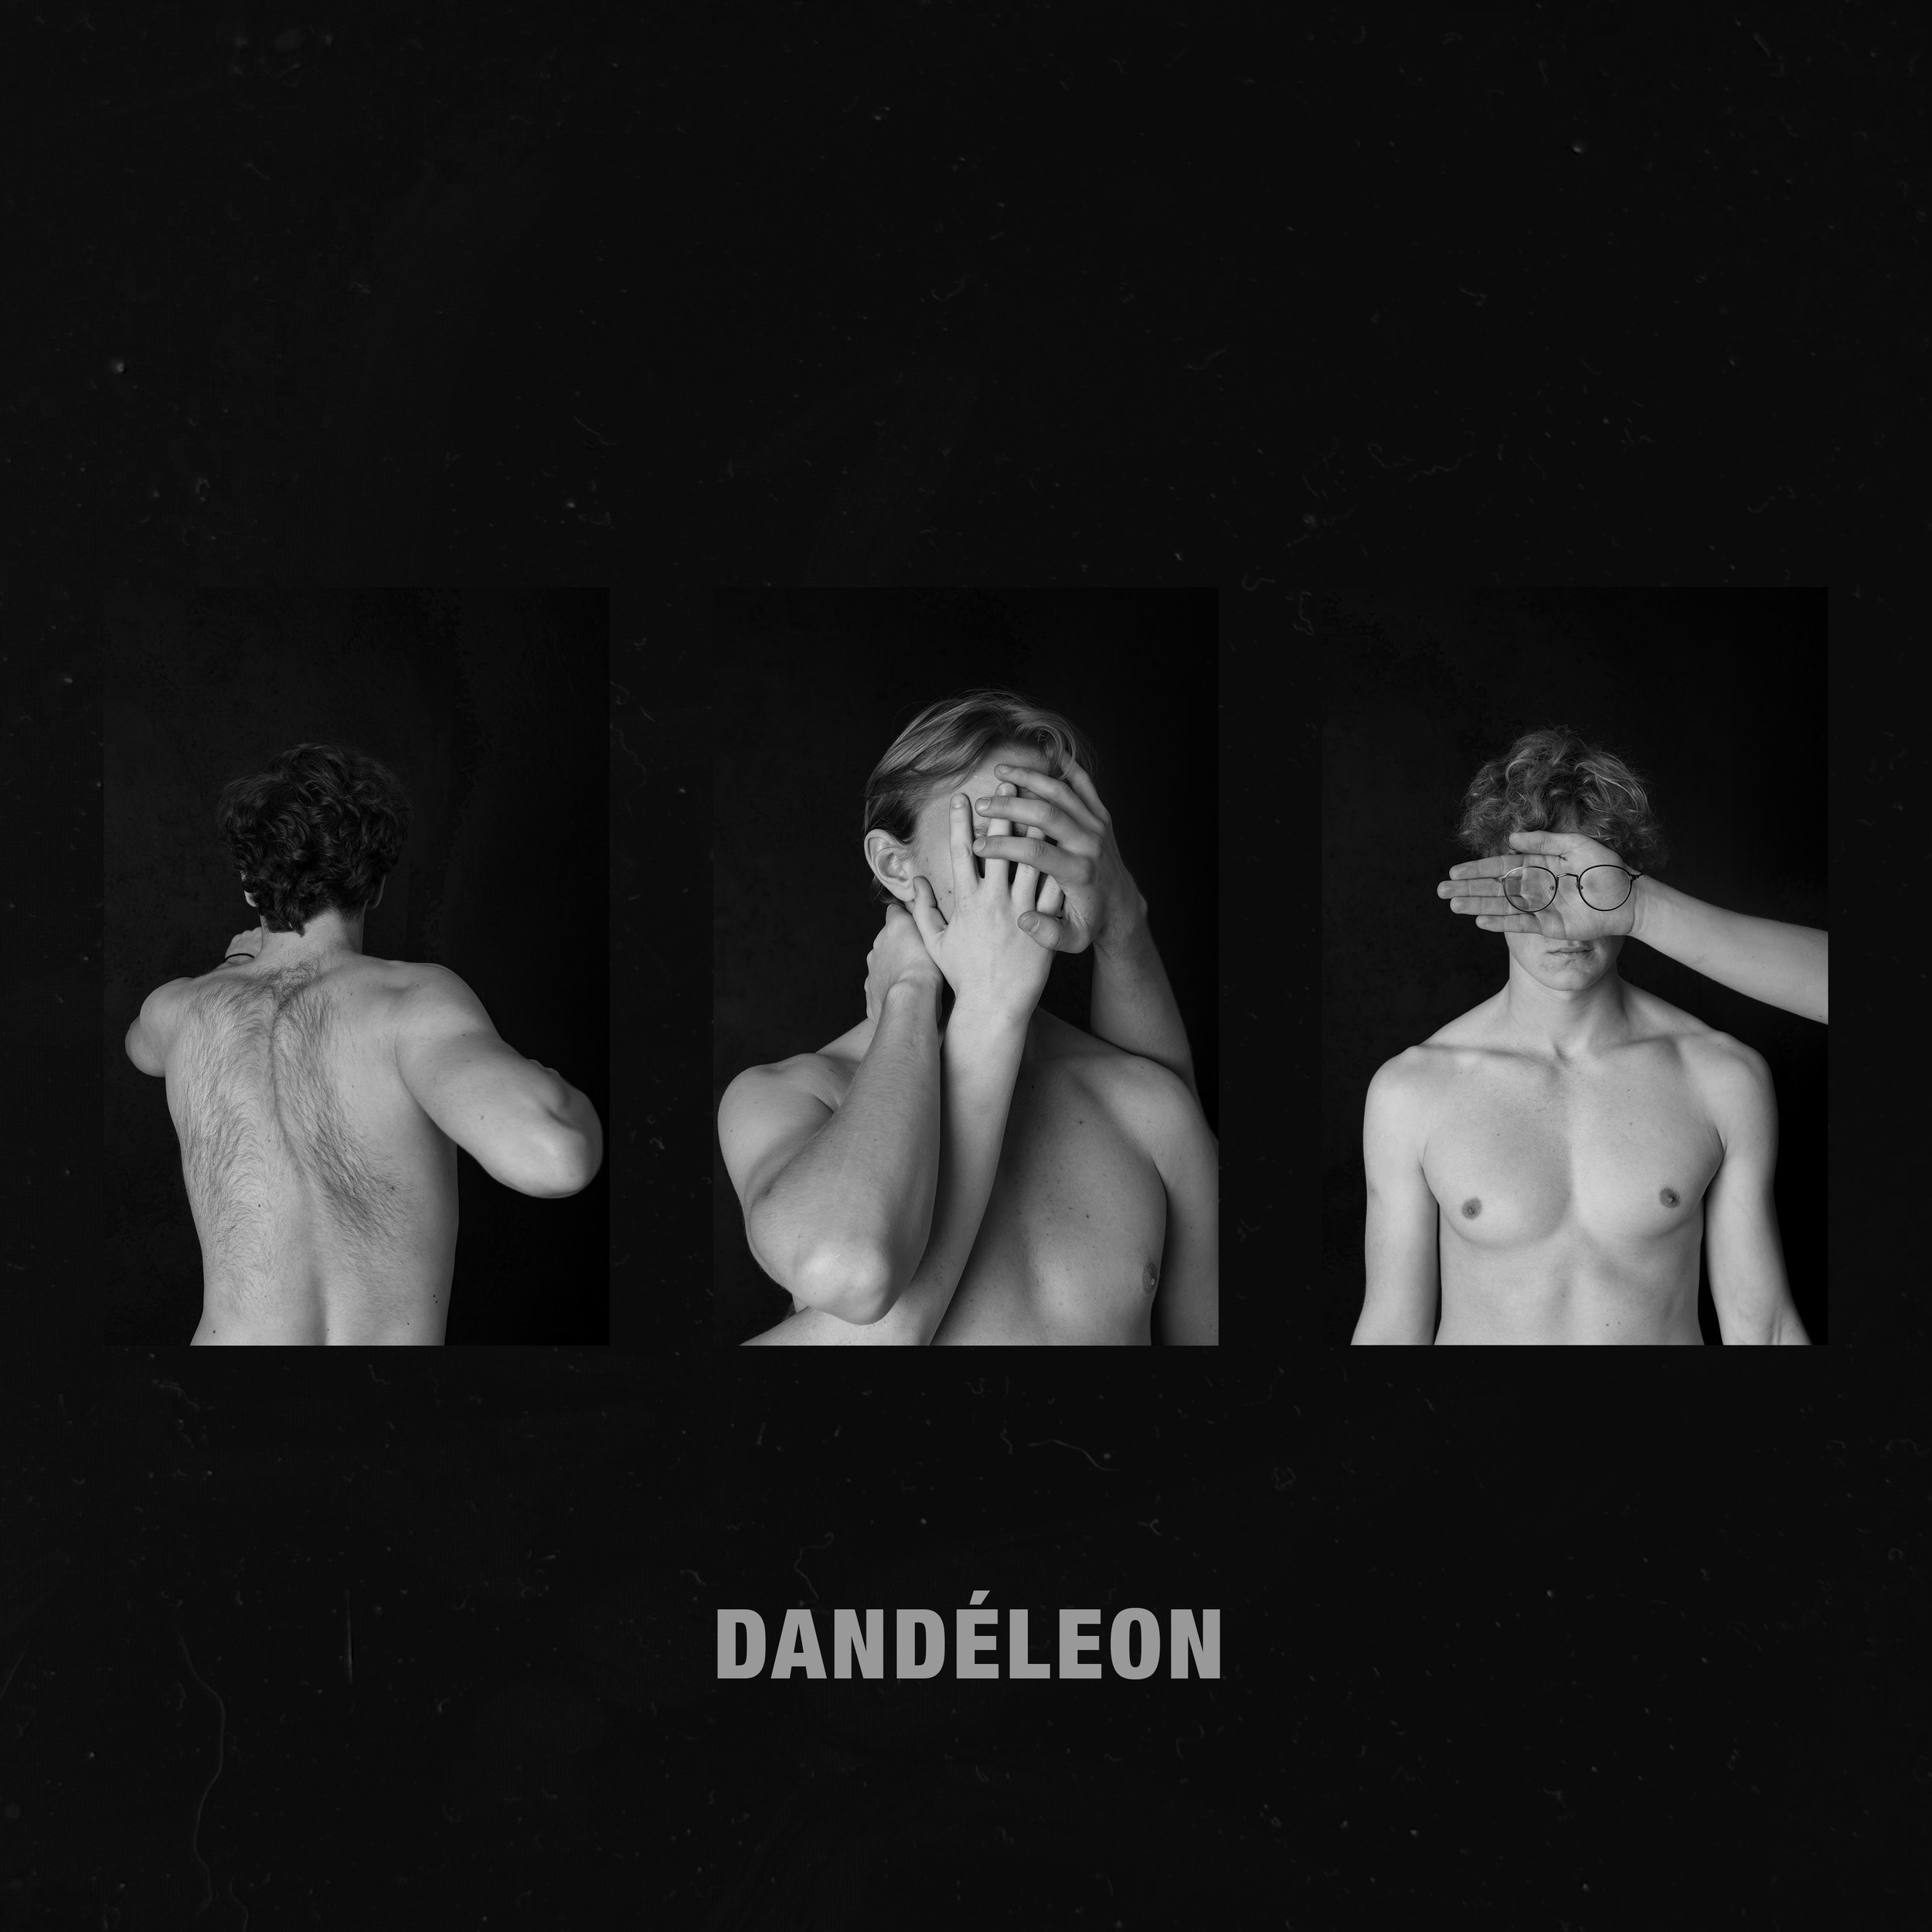 Album cover - Dandéleon 2018